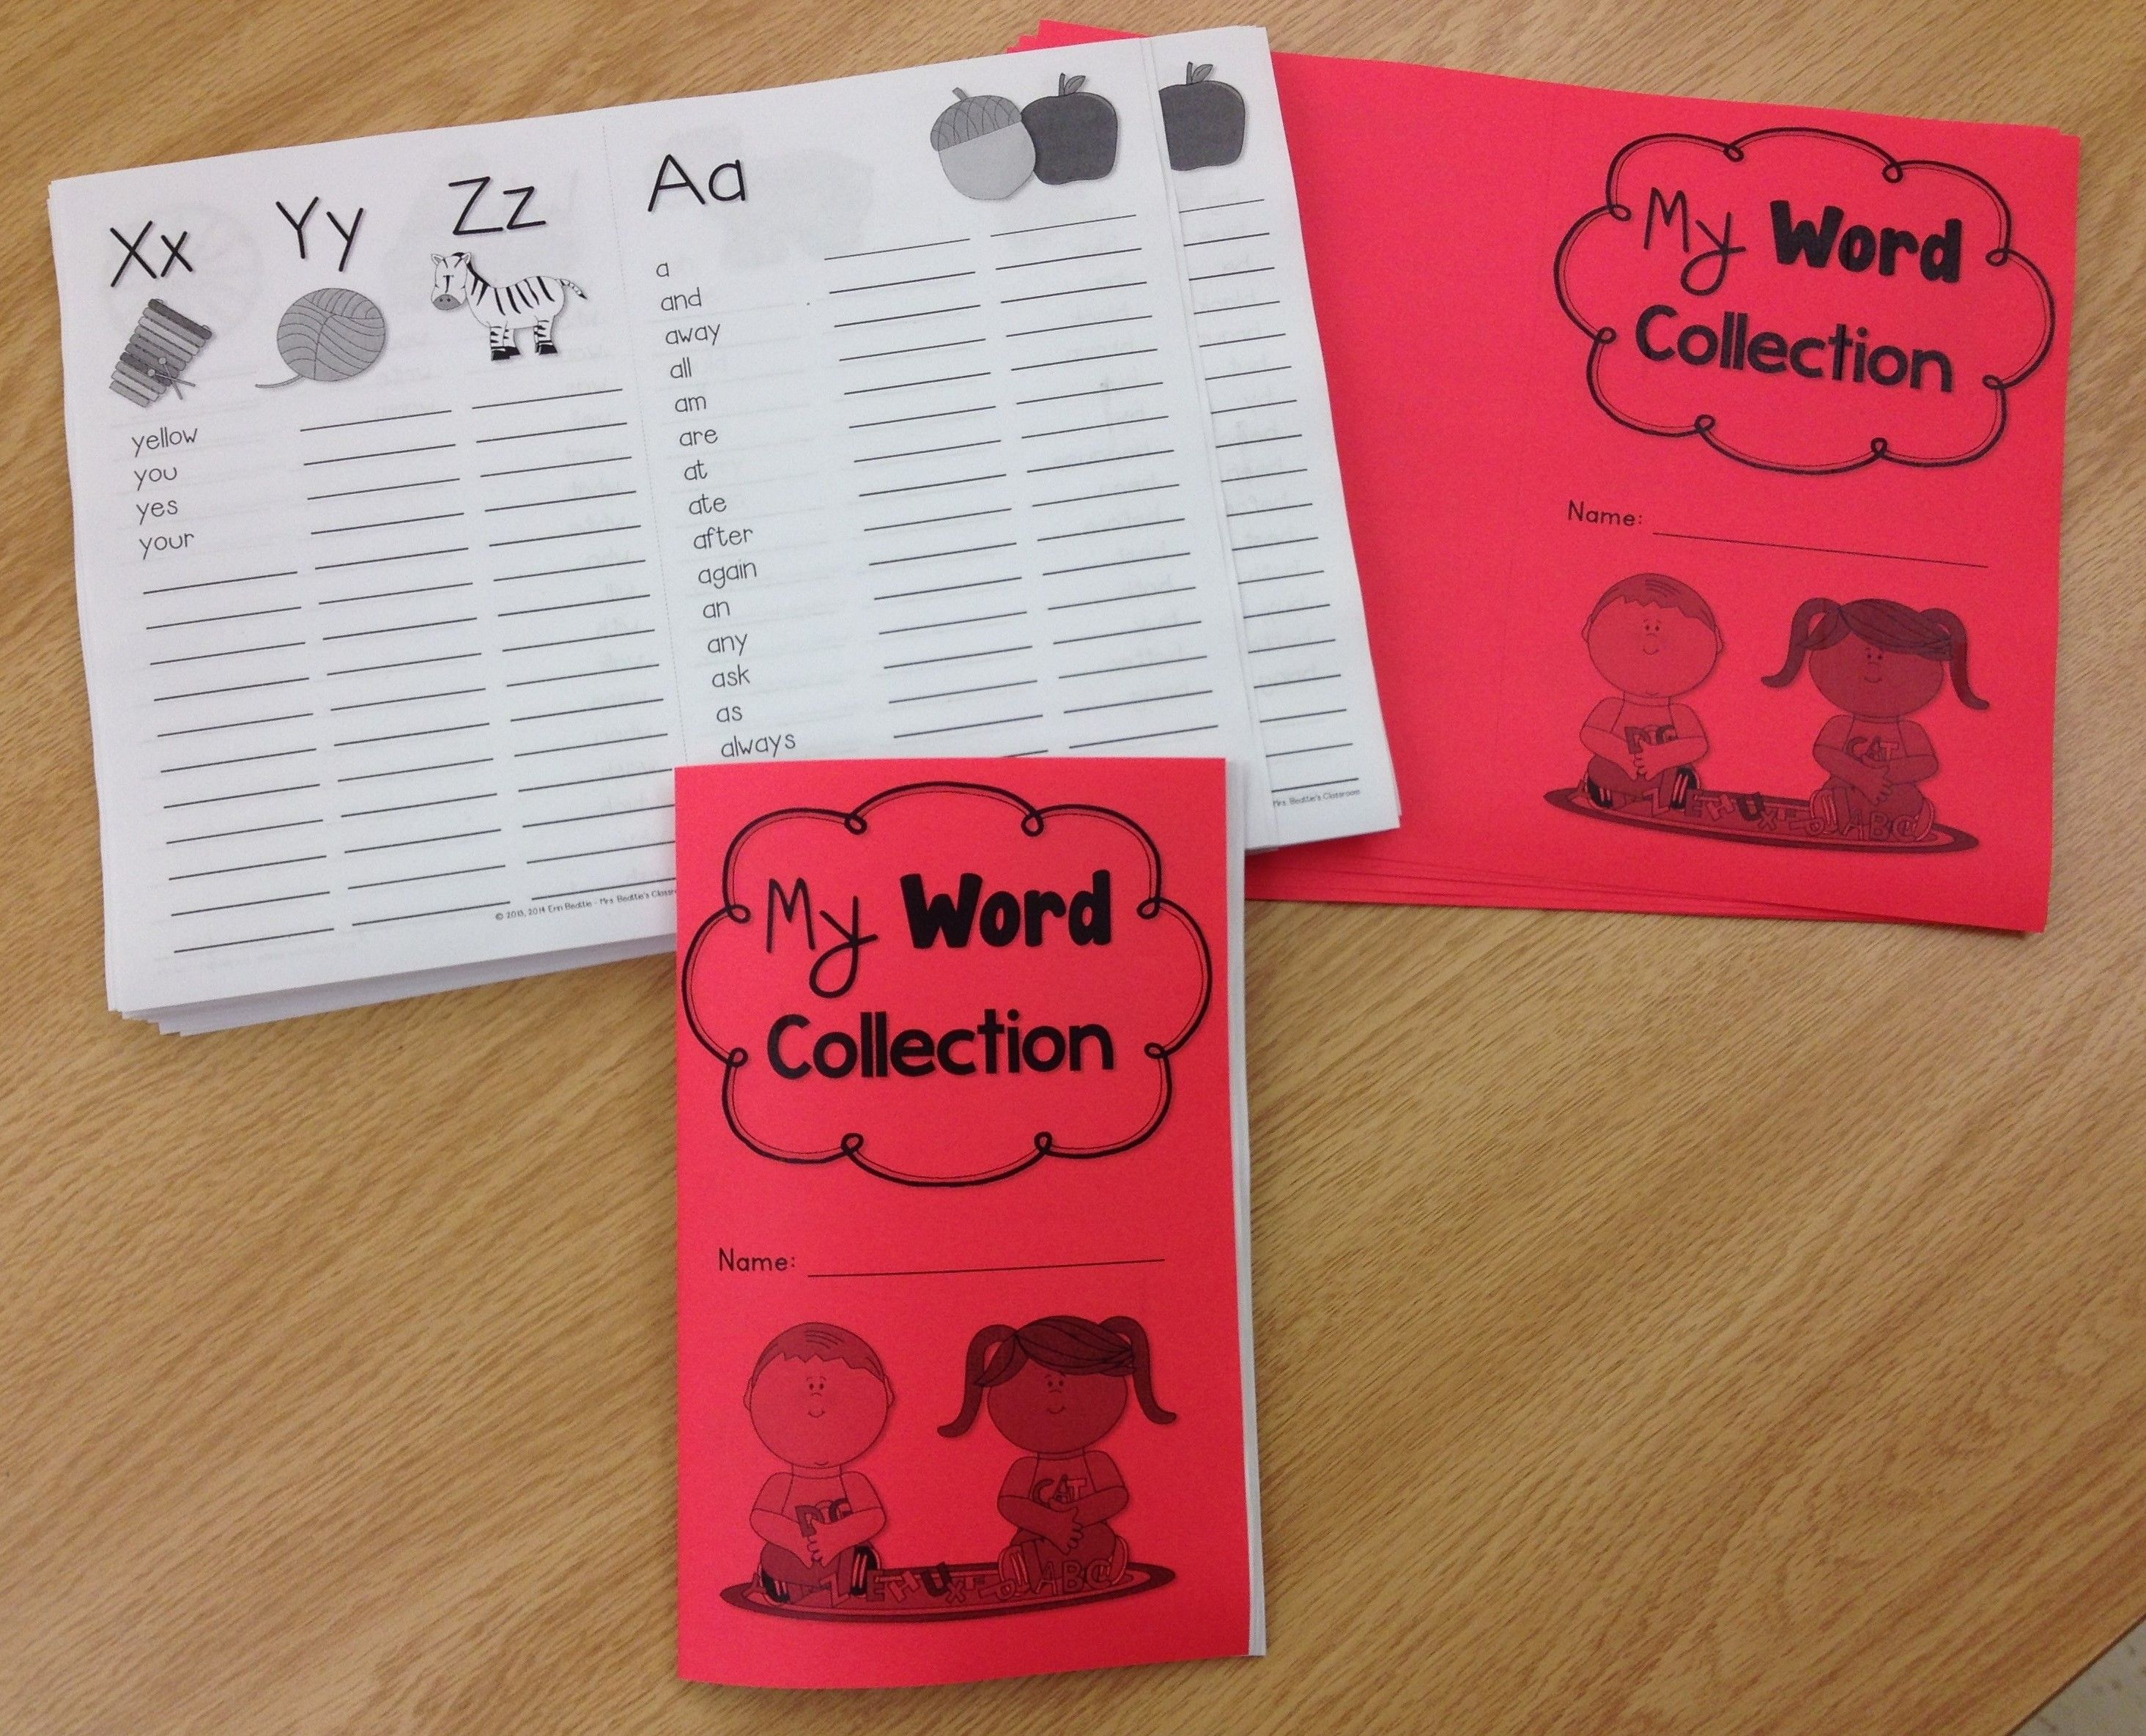 My Word Collection - A Personal Word Book Dictionary For Primary Students from Mrs. Beattie's Classroom. The Word Collection booklet contains all of the Dolch words from the pre-primer to third grade lists, as well as a separate page of number words.